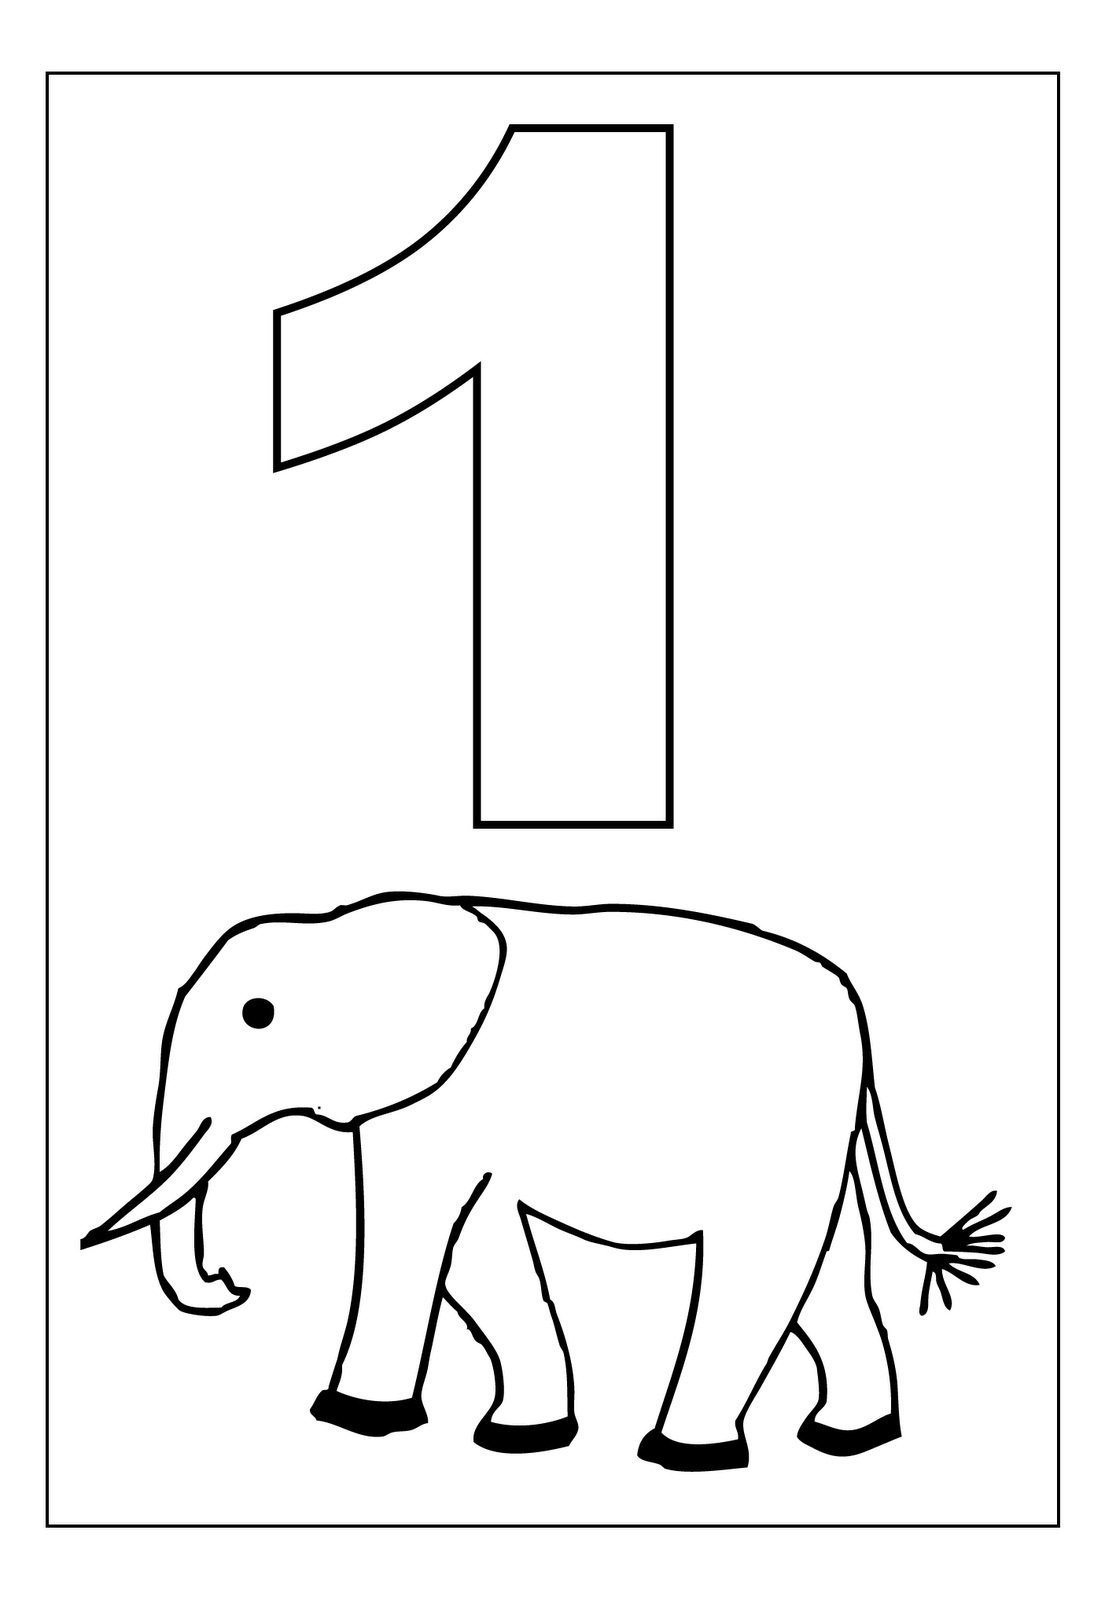 Free printable number coloring pages for kids for Printable color by number pages for kids